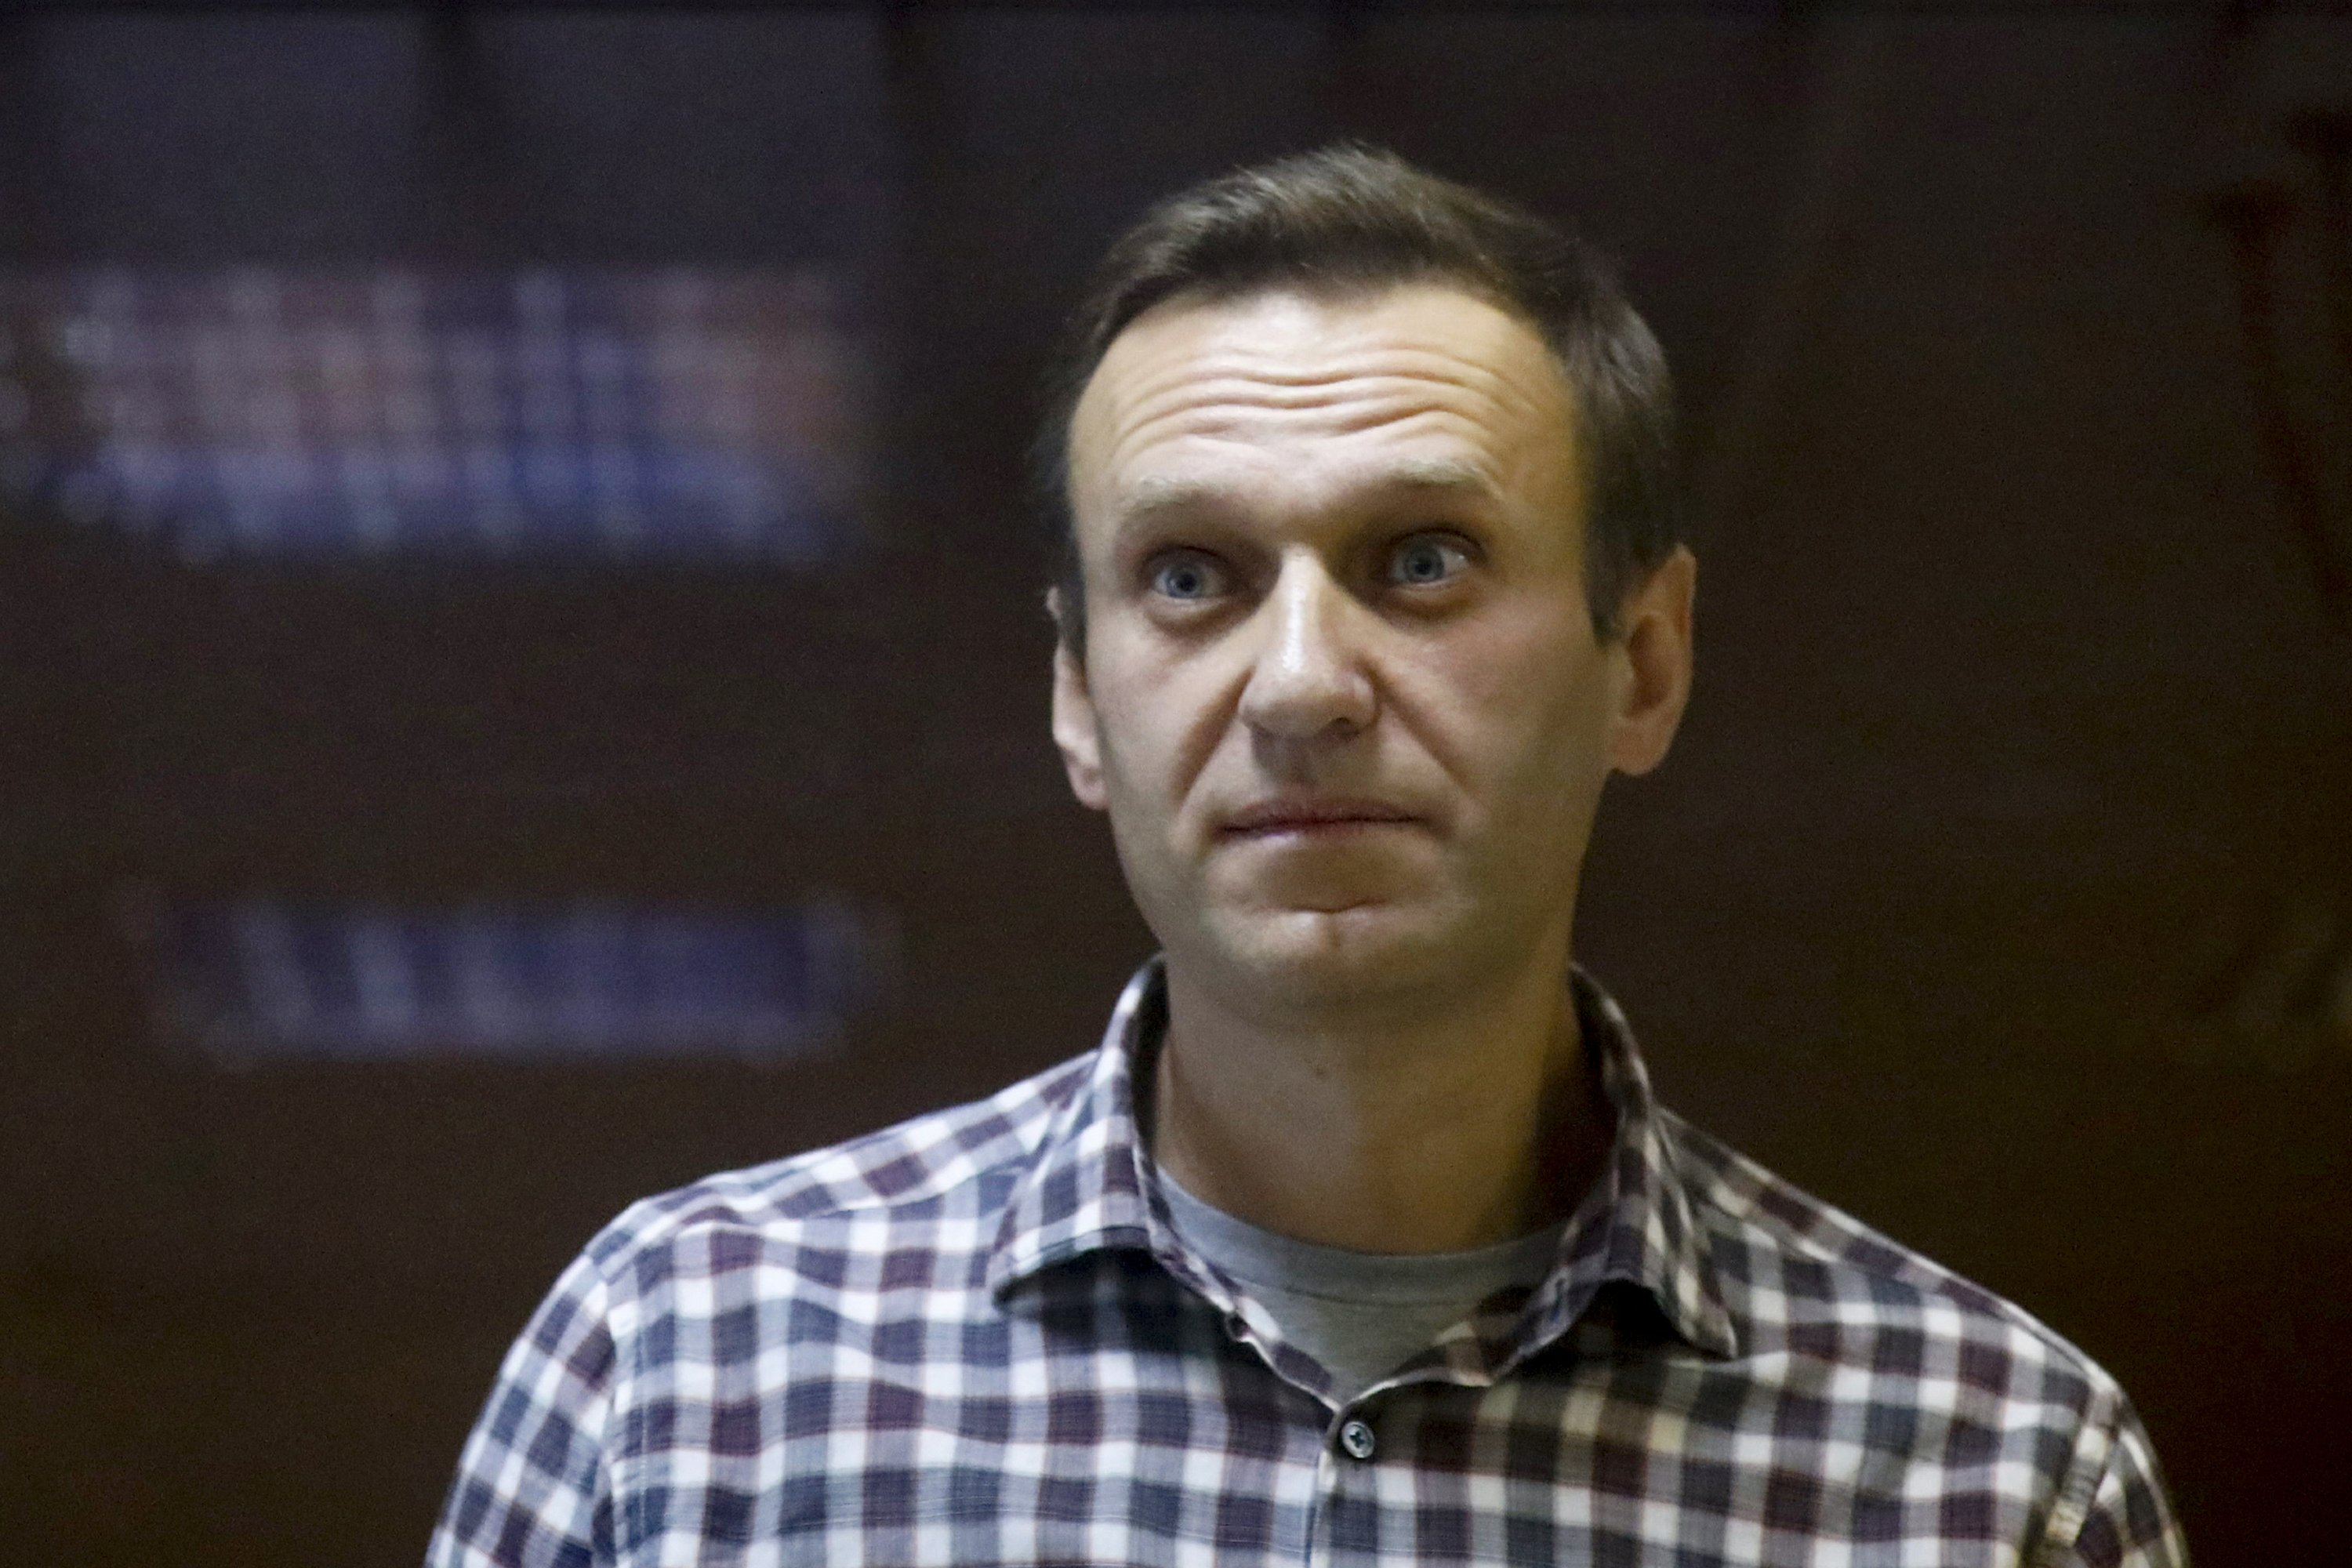 Jailed Navalny to be moved to a hospital in another prison